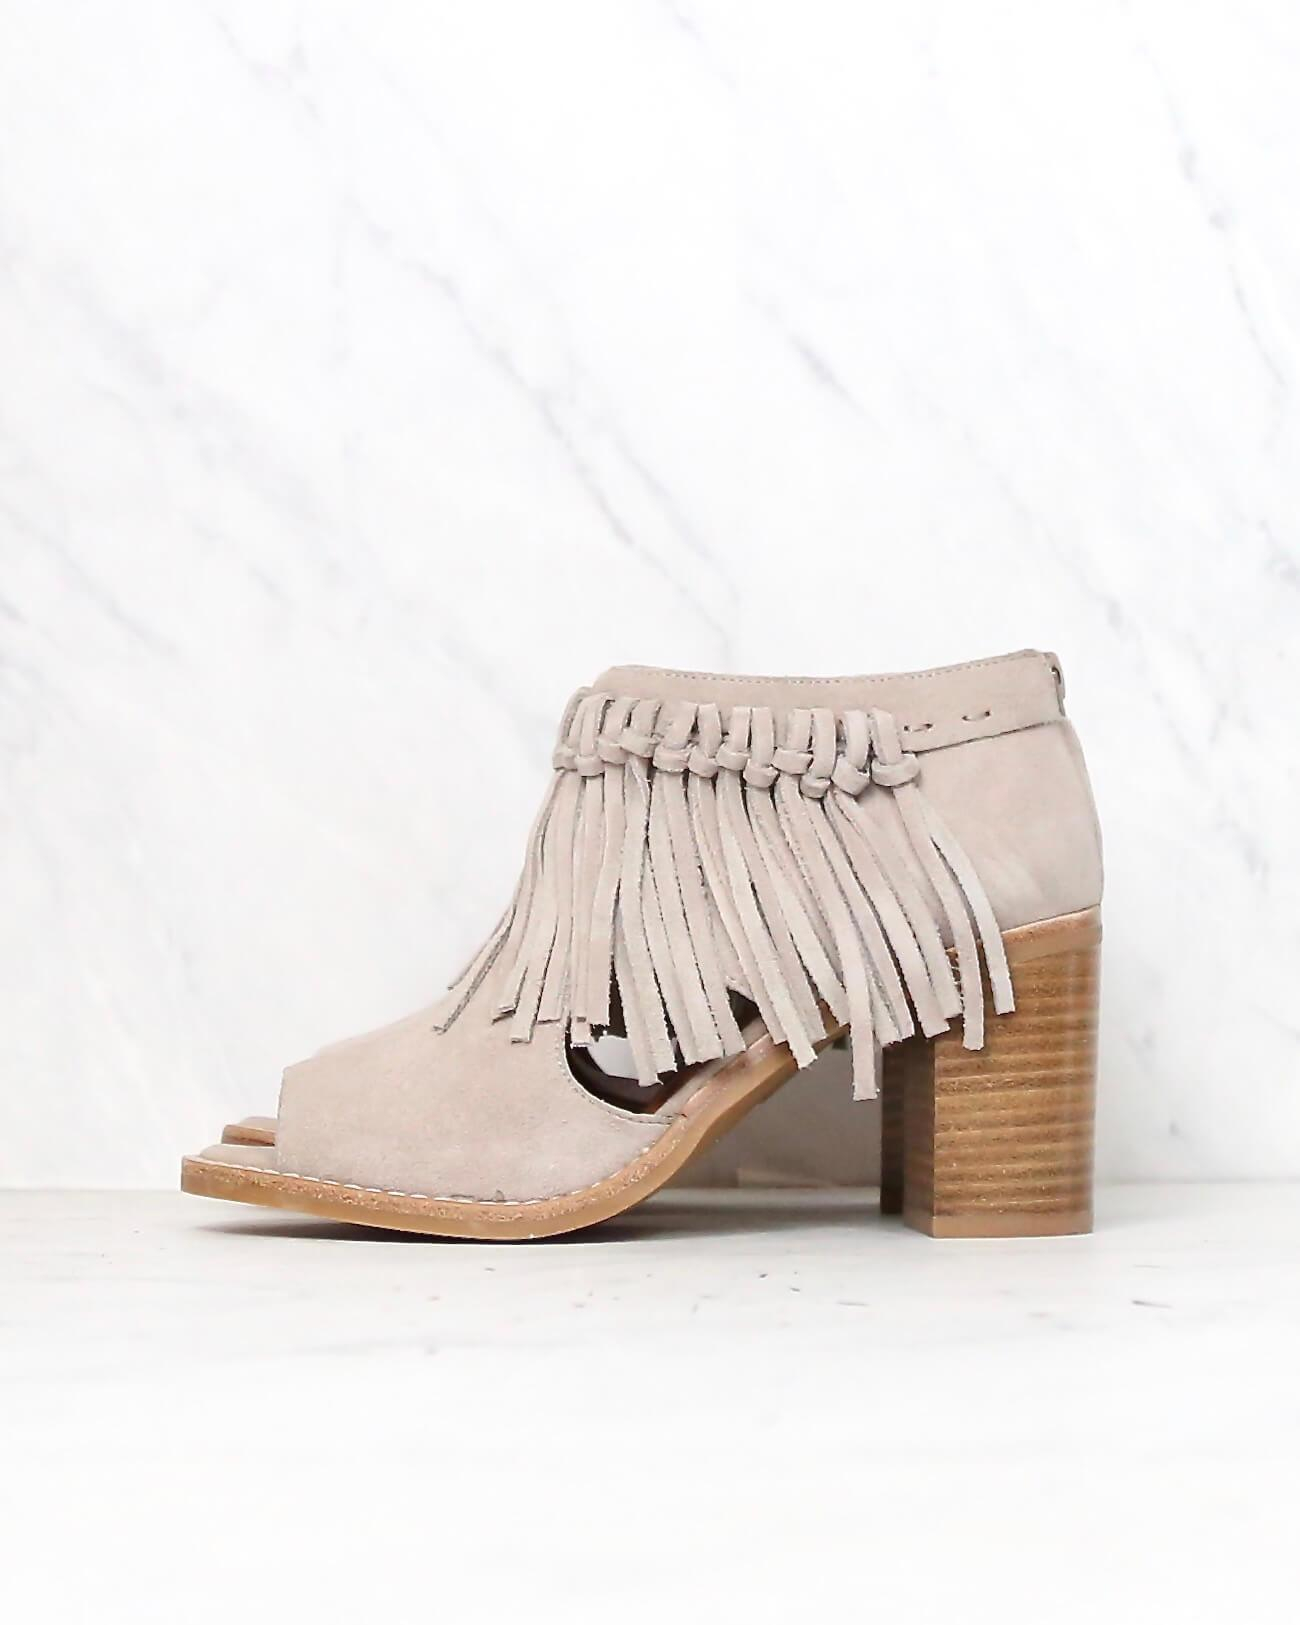 Image of Sbicca - Hickory Suede Leather Fringe Ankle Booties in Beige